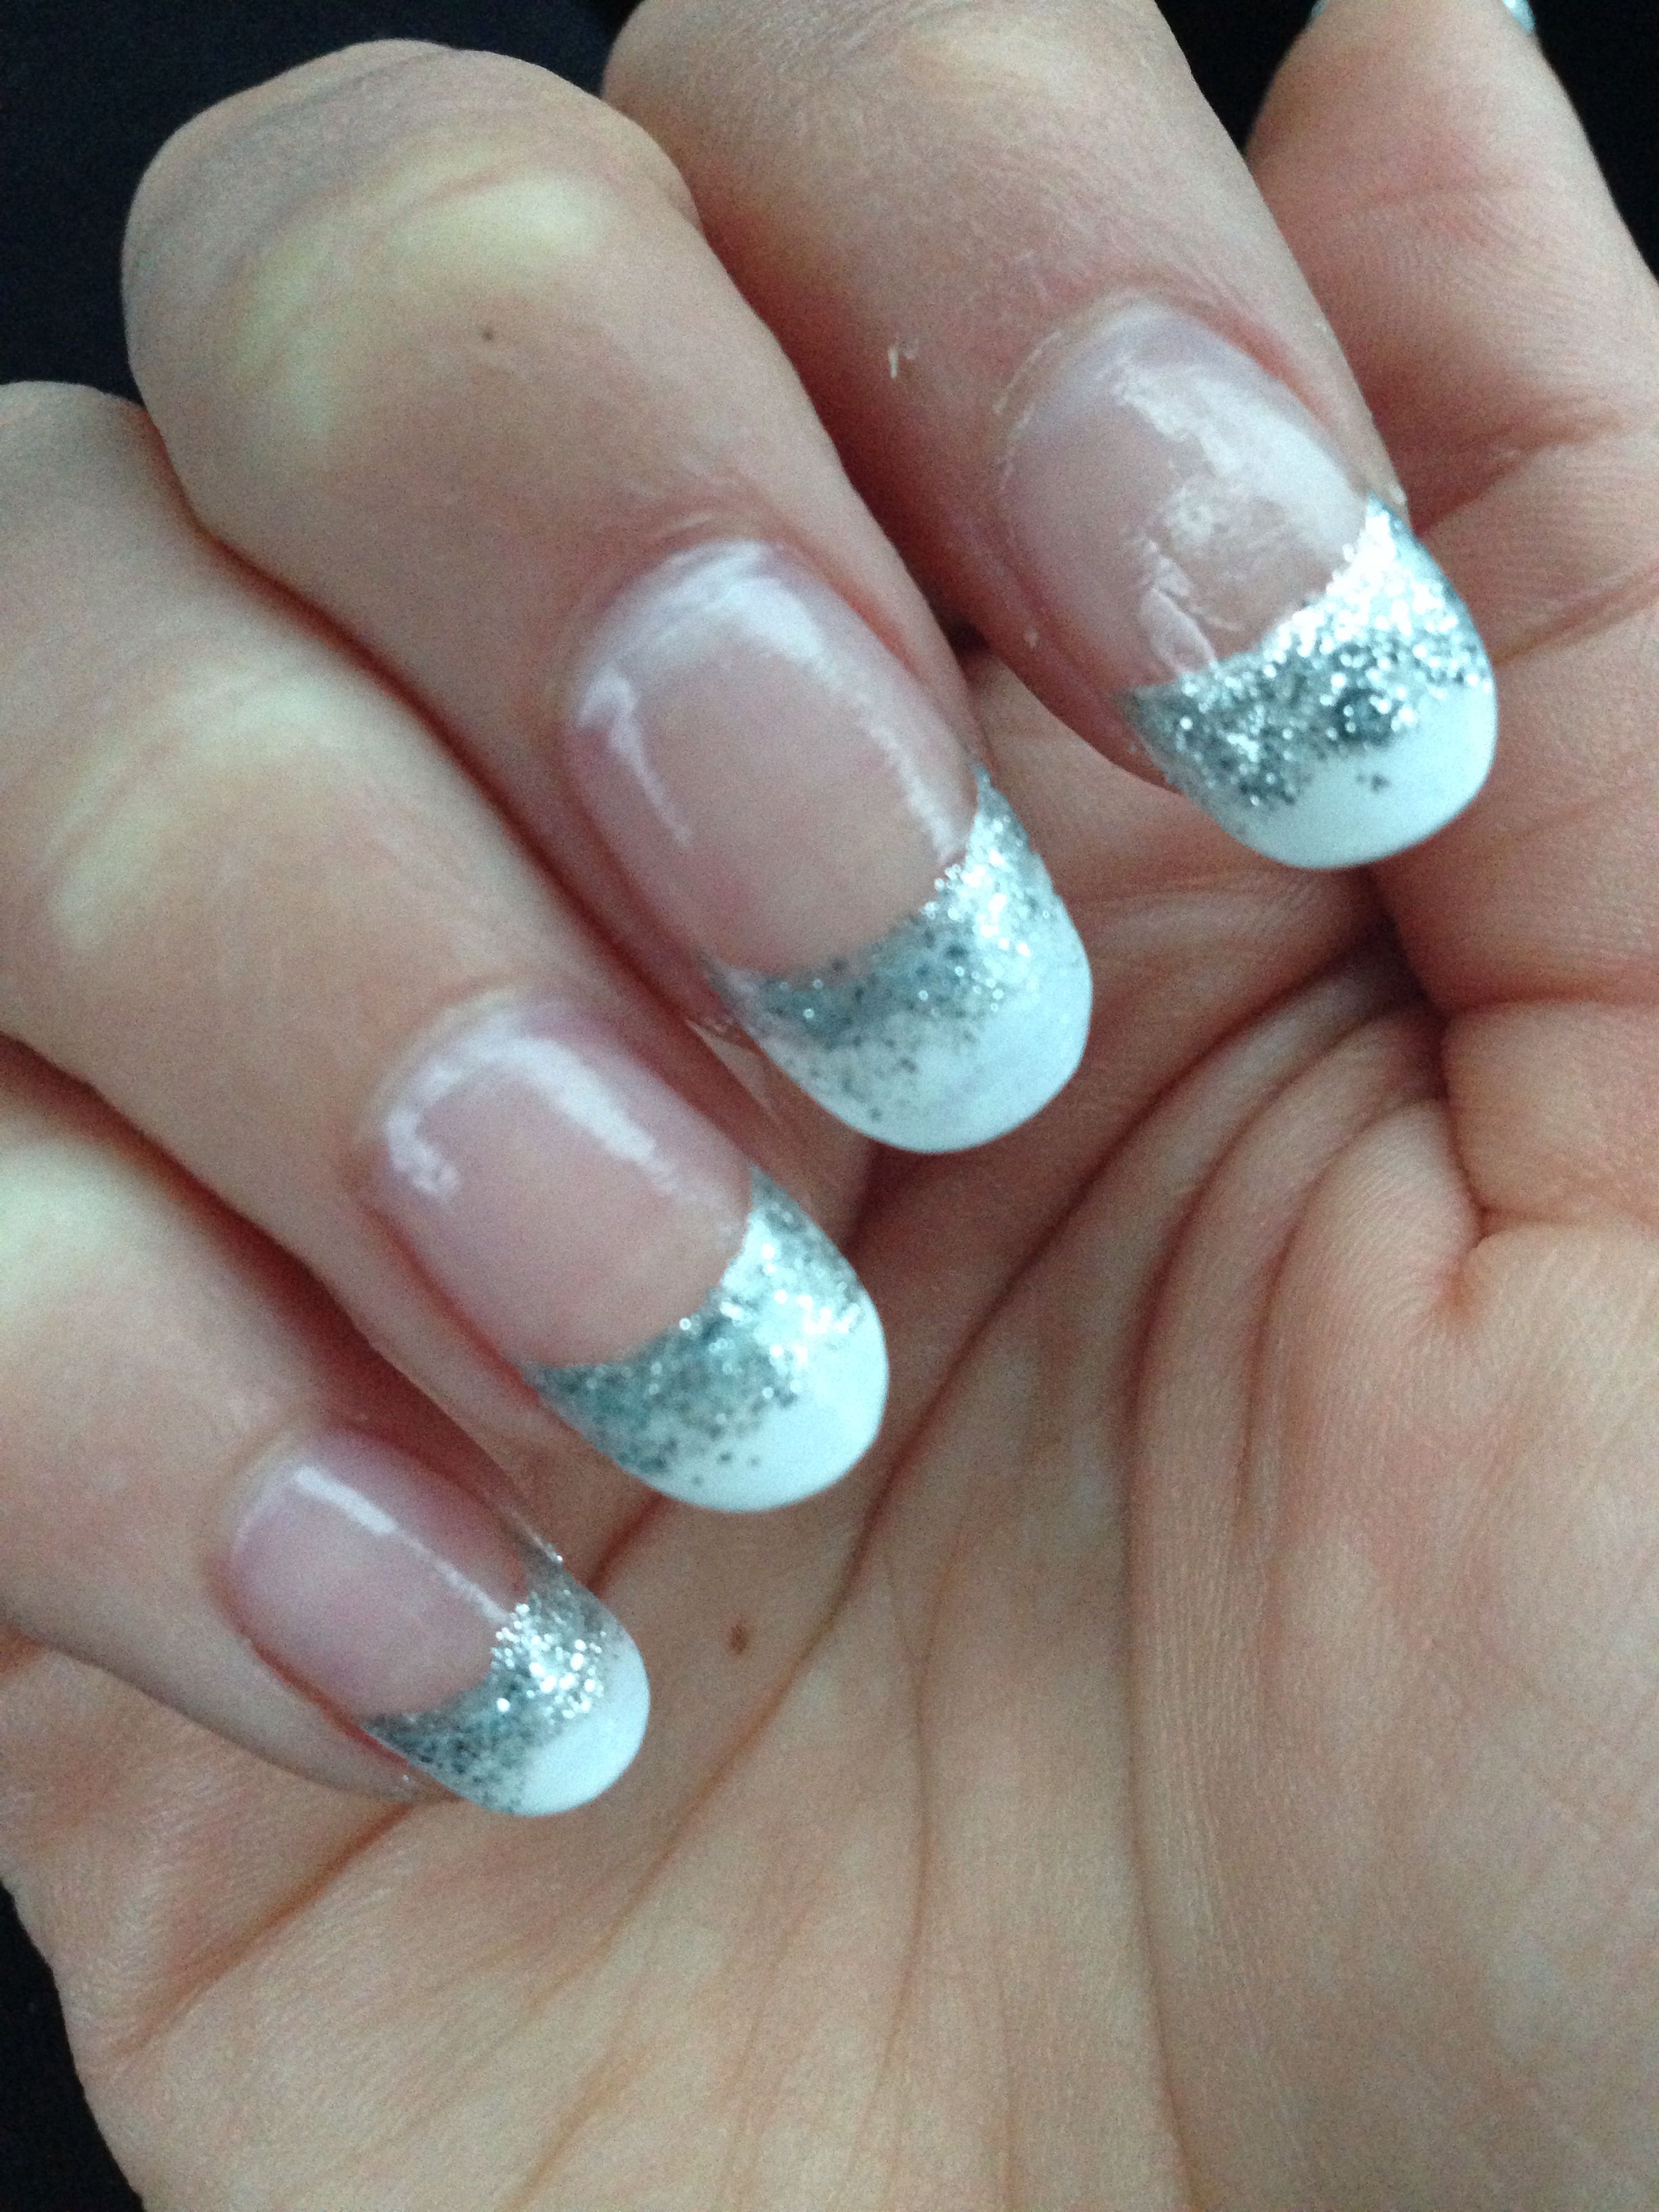 Round #acrylics with a French fade into glitter | kimme | Pinterest ...